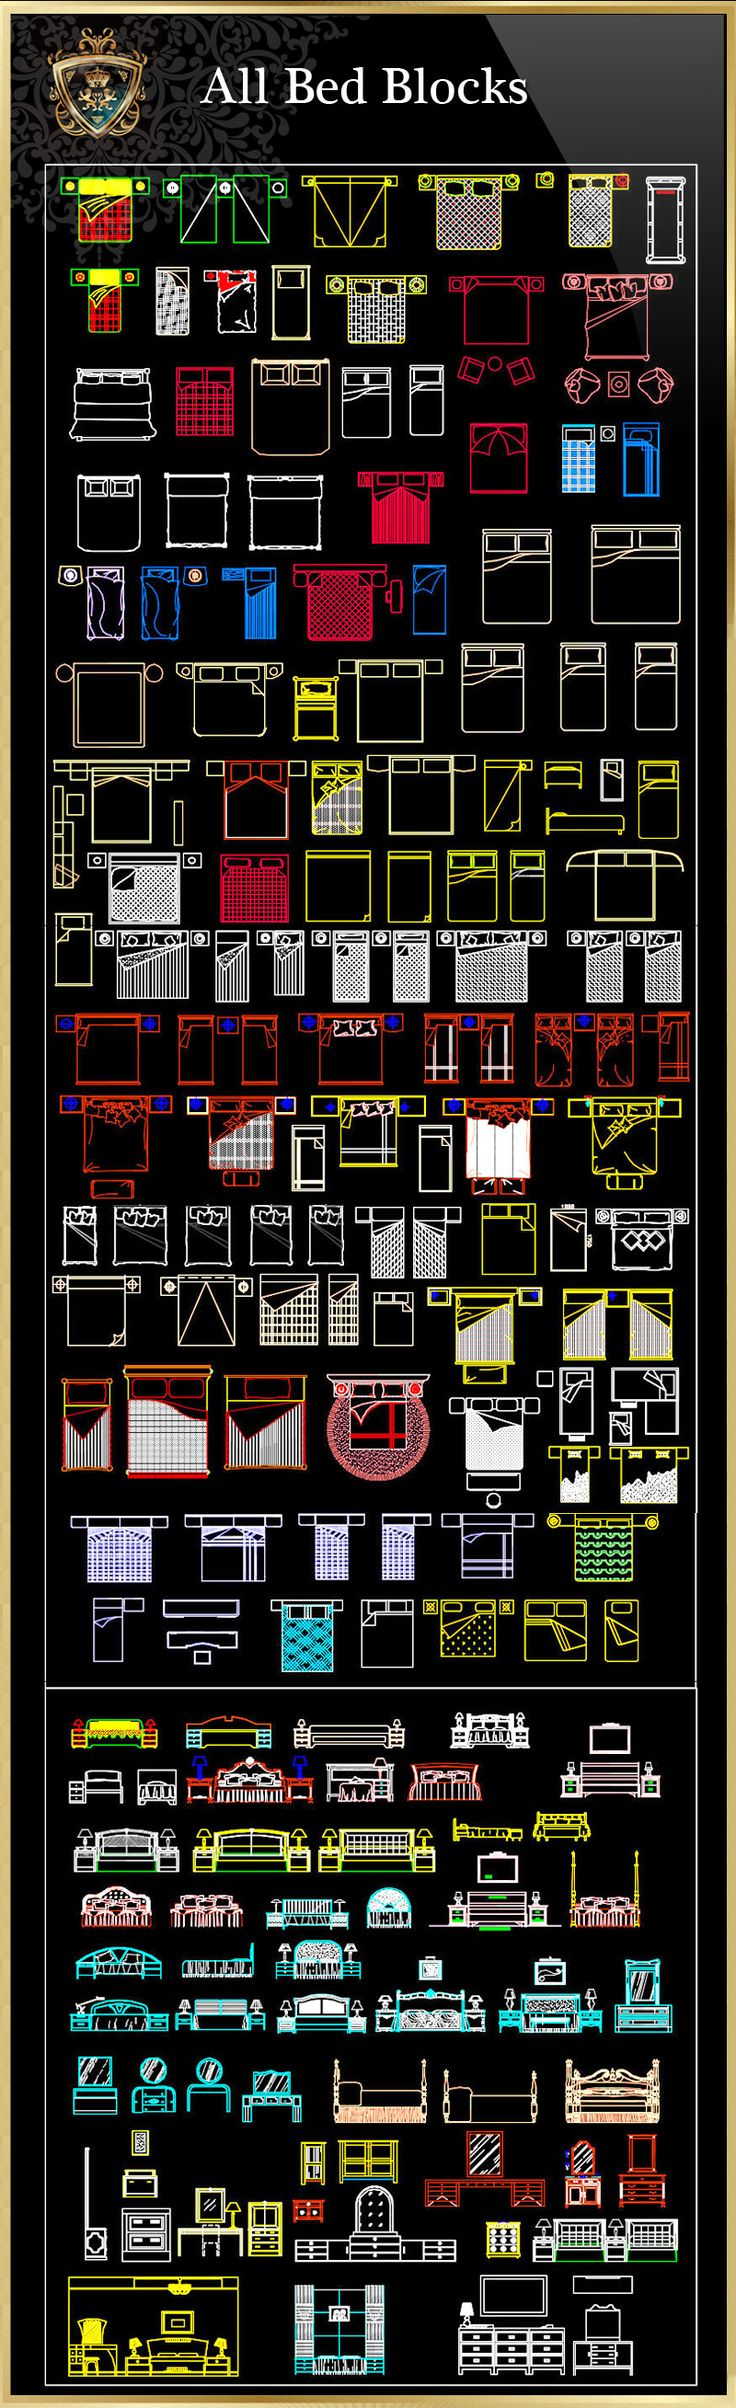 ★【All Bed Blocks】Download Luxury Architectural Design CAD Drawings--Over 20000+ High quality CAD Blocks and Drawings Download!